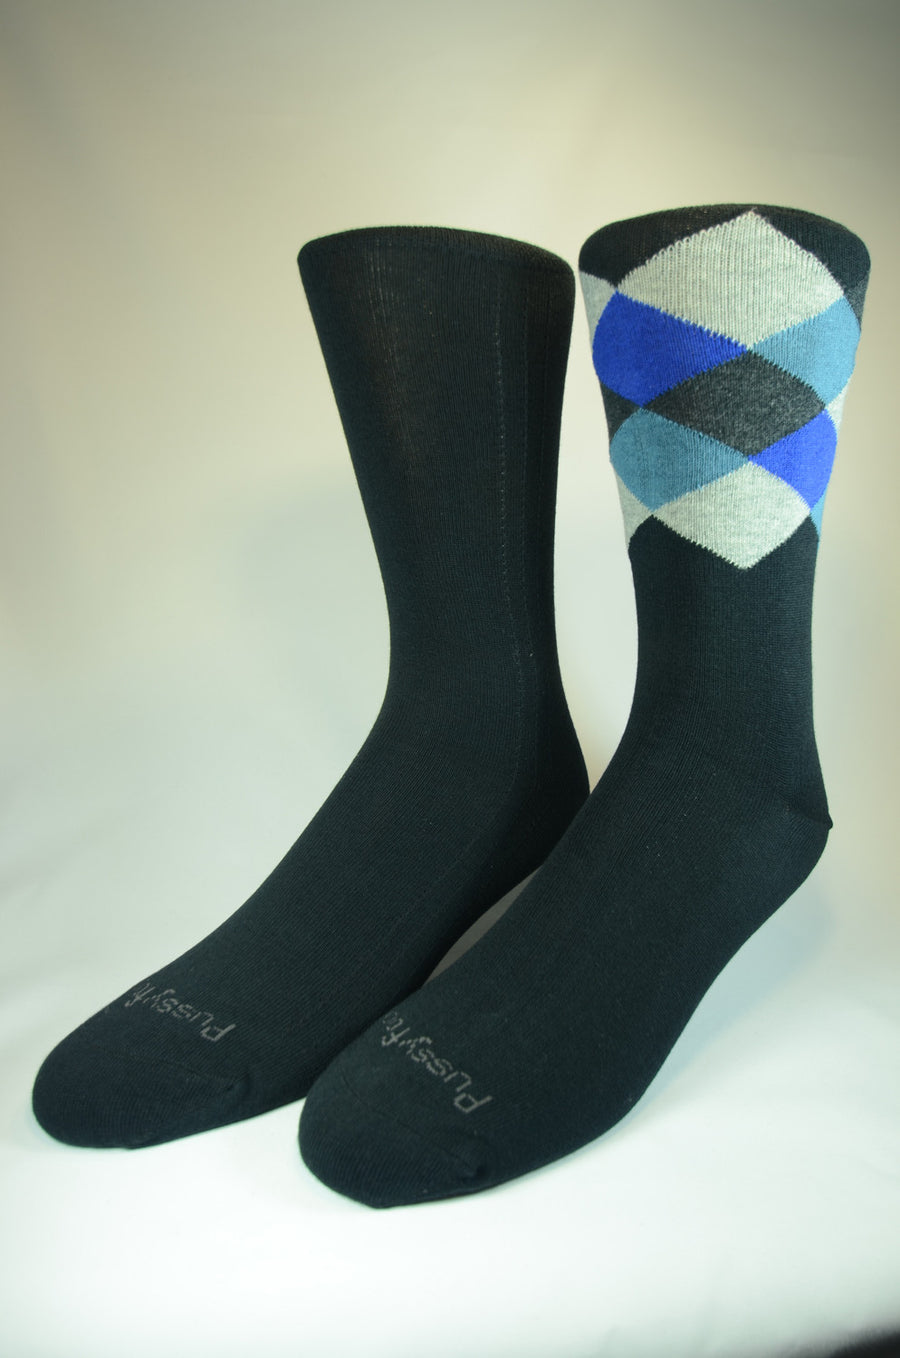 Pussyfoot Non Tight Comfort Health Socks 2 Pack - Argyle